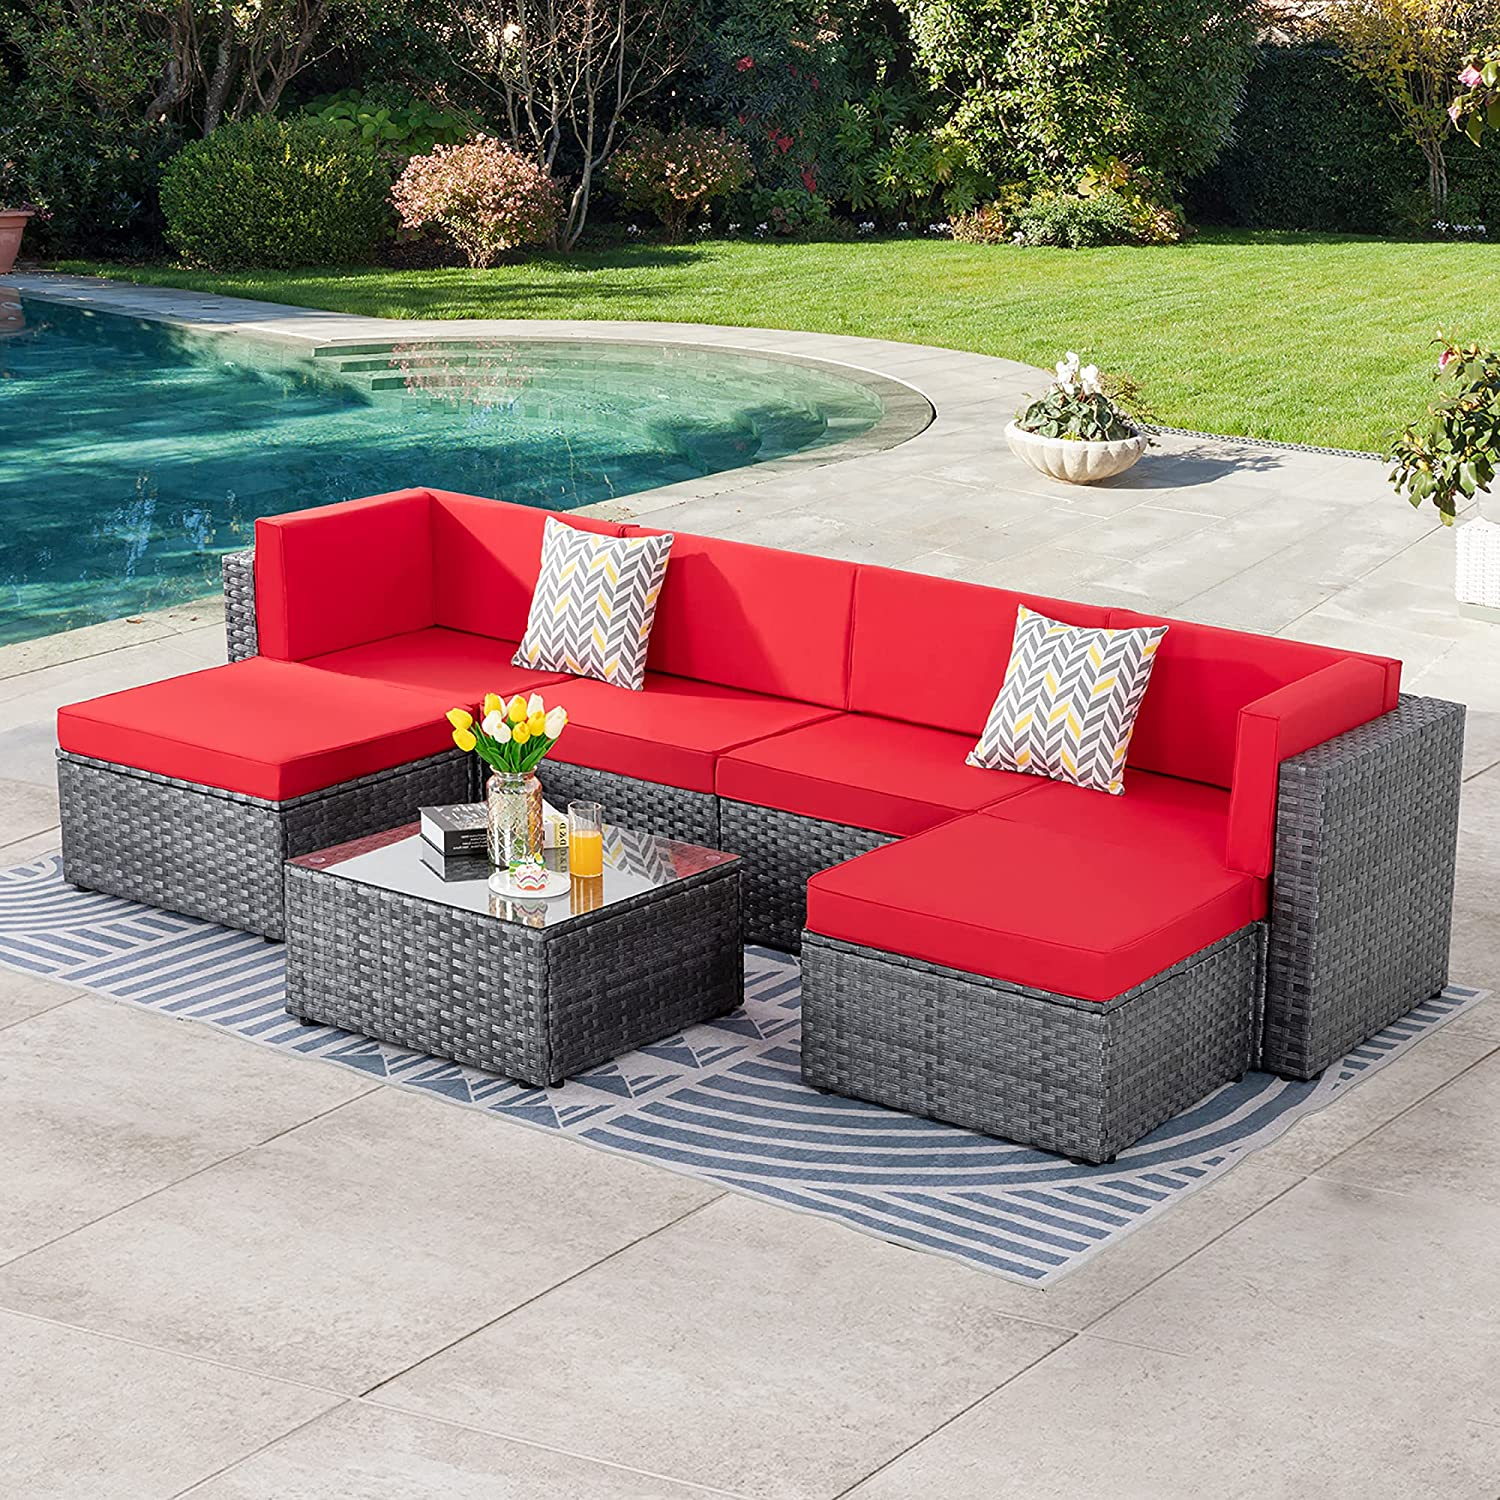 SUNLEI 7pcs Patio Outdoor Furniture Sets Conversation Set,Low Back All-Weather Rattan Sectional Sofa with Tea Table&Washable Couch Cushions&Ottoman(Silver Rattan)(Red)